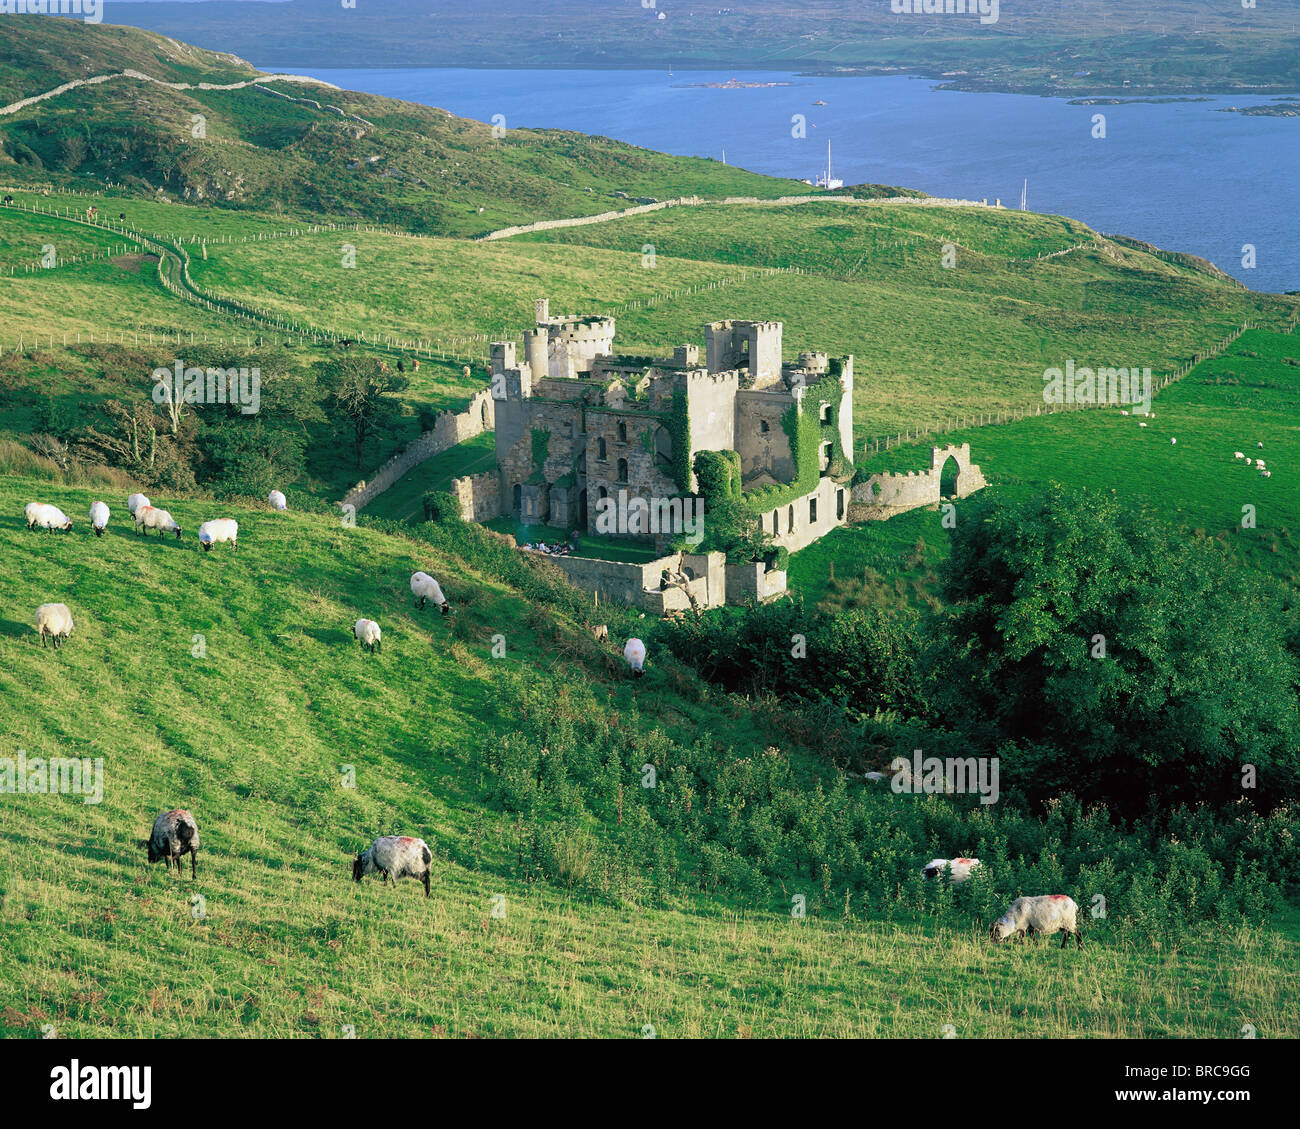 Clifden Castle, Co Galway, Ireland; 19Th Century Gothic Revival Style Castle - Stock Image